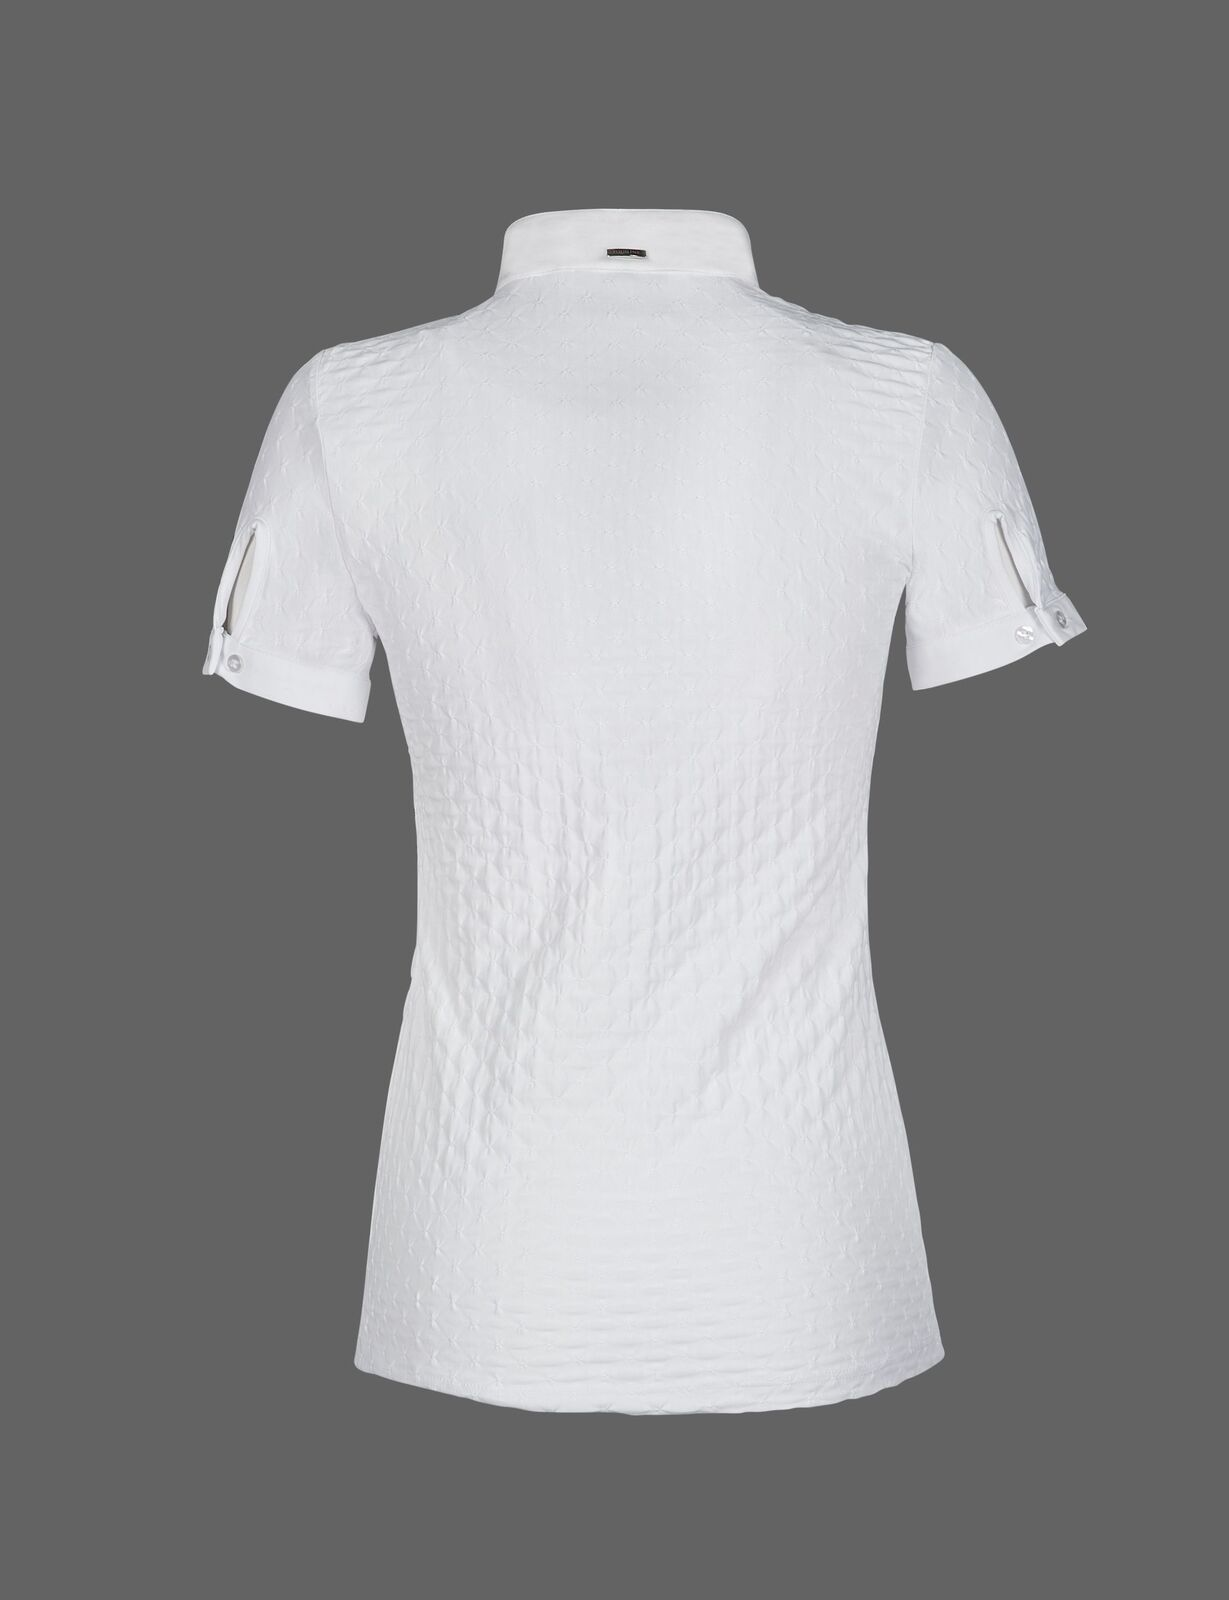 Equiline MISTY WOMAN COMP. SHIRT WHITE S S 18